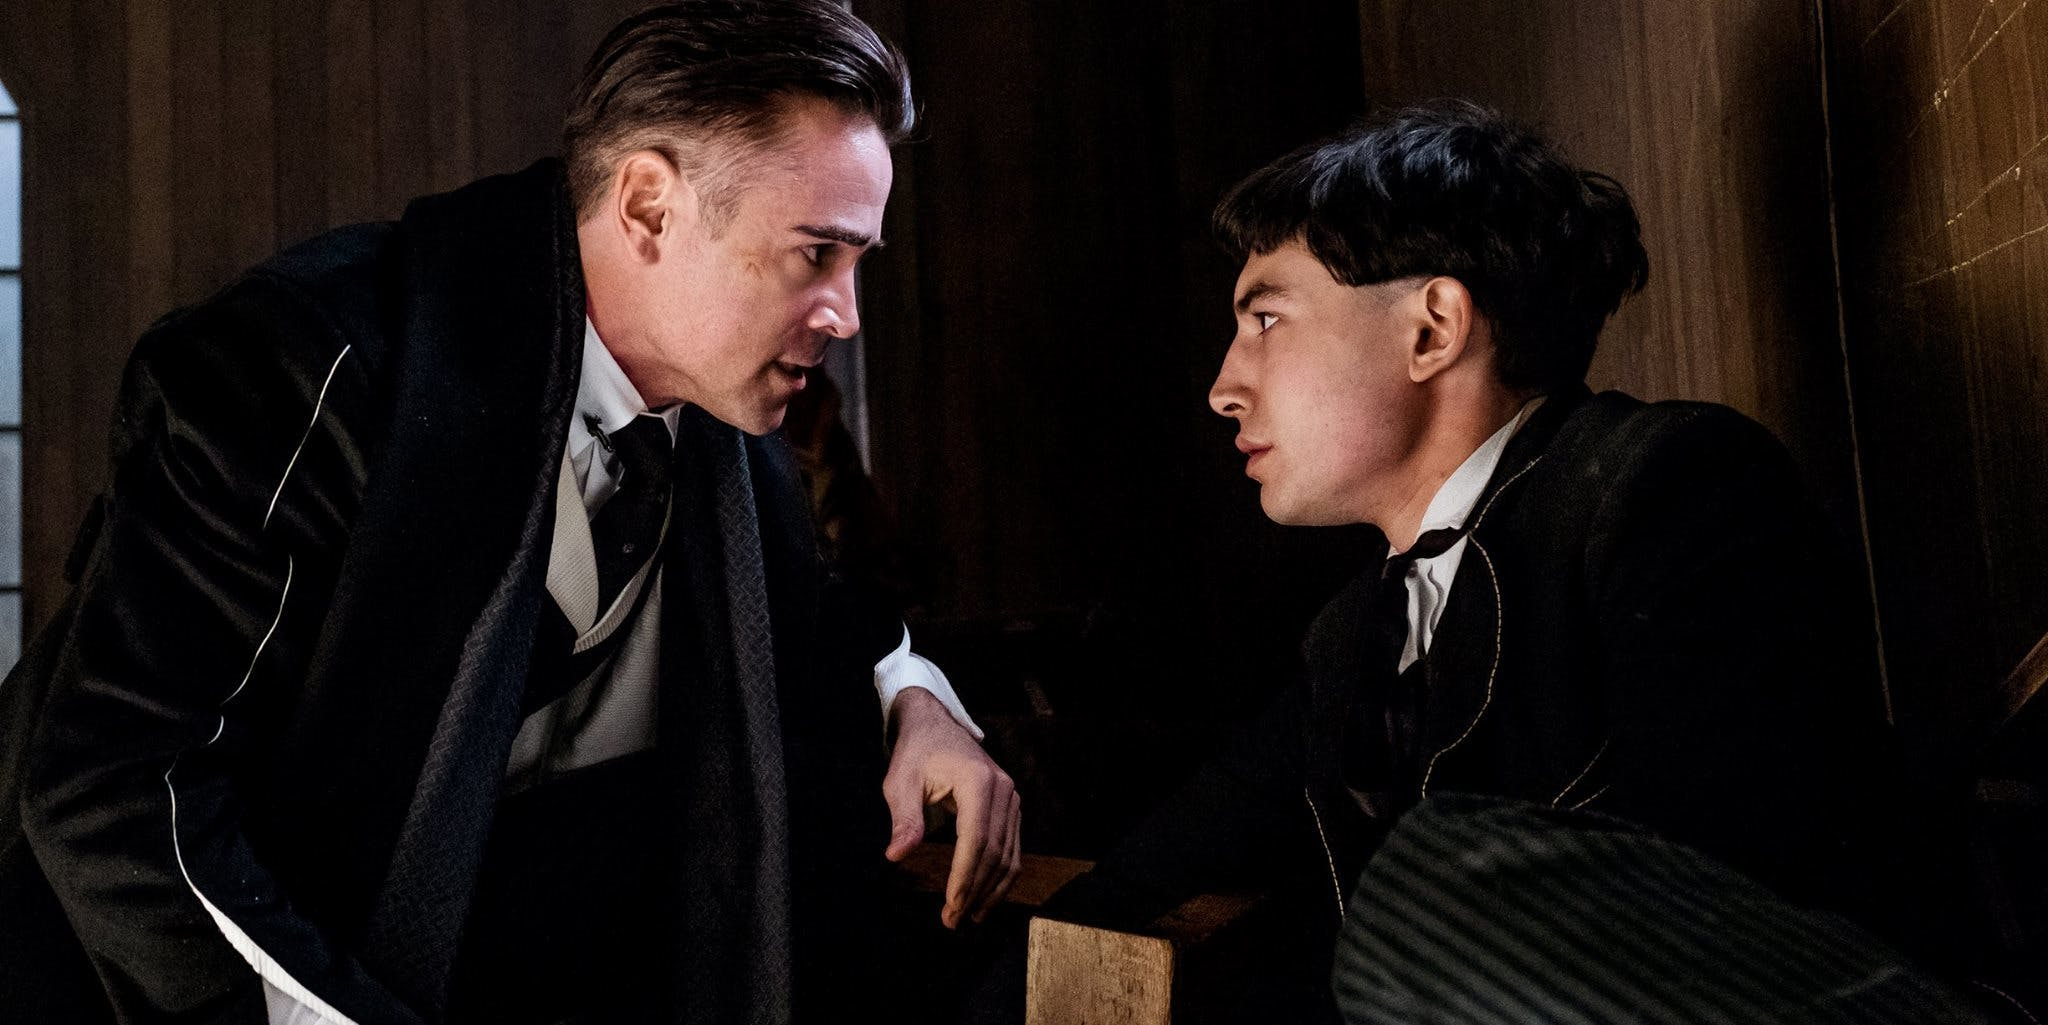 Percival Graves and Credence Barebone in 'Fantastic Beasts'